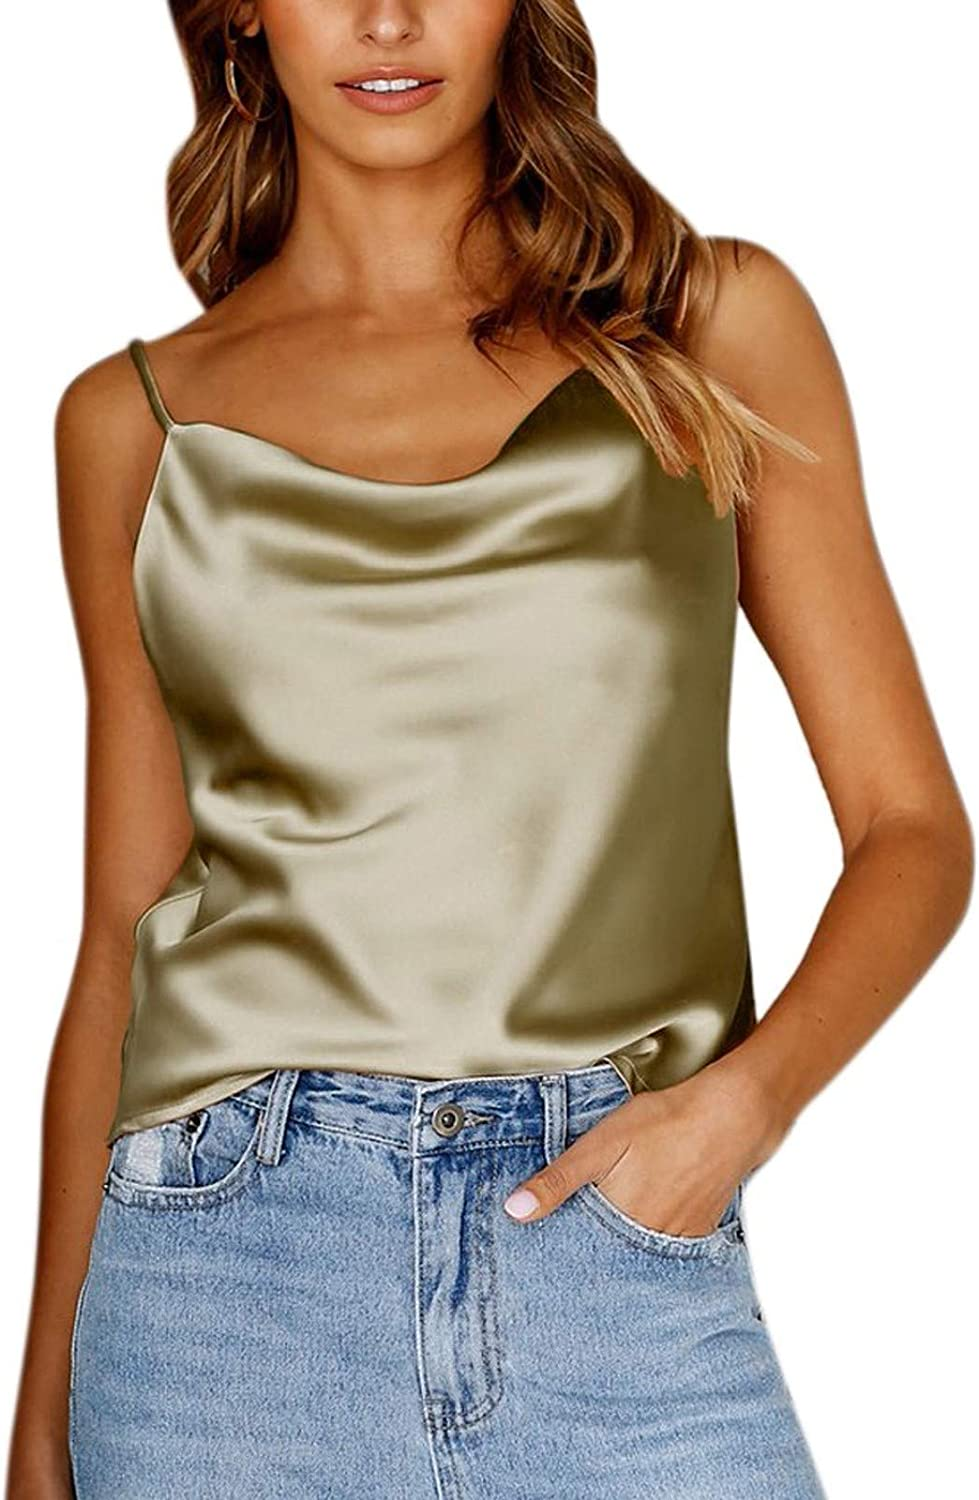 Portazai Womens Camisole Cami Top Sexy Strappy Sleeveless Tees Shirts Casual Bassic Solid Tanks Slim Fit Vest Tops